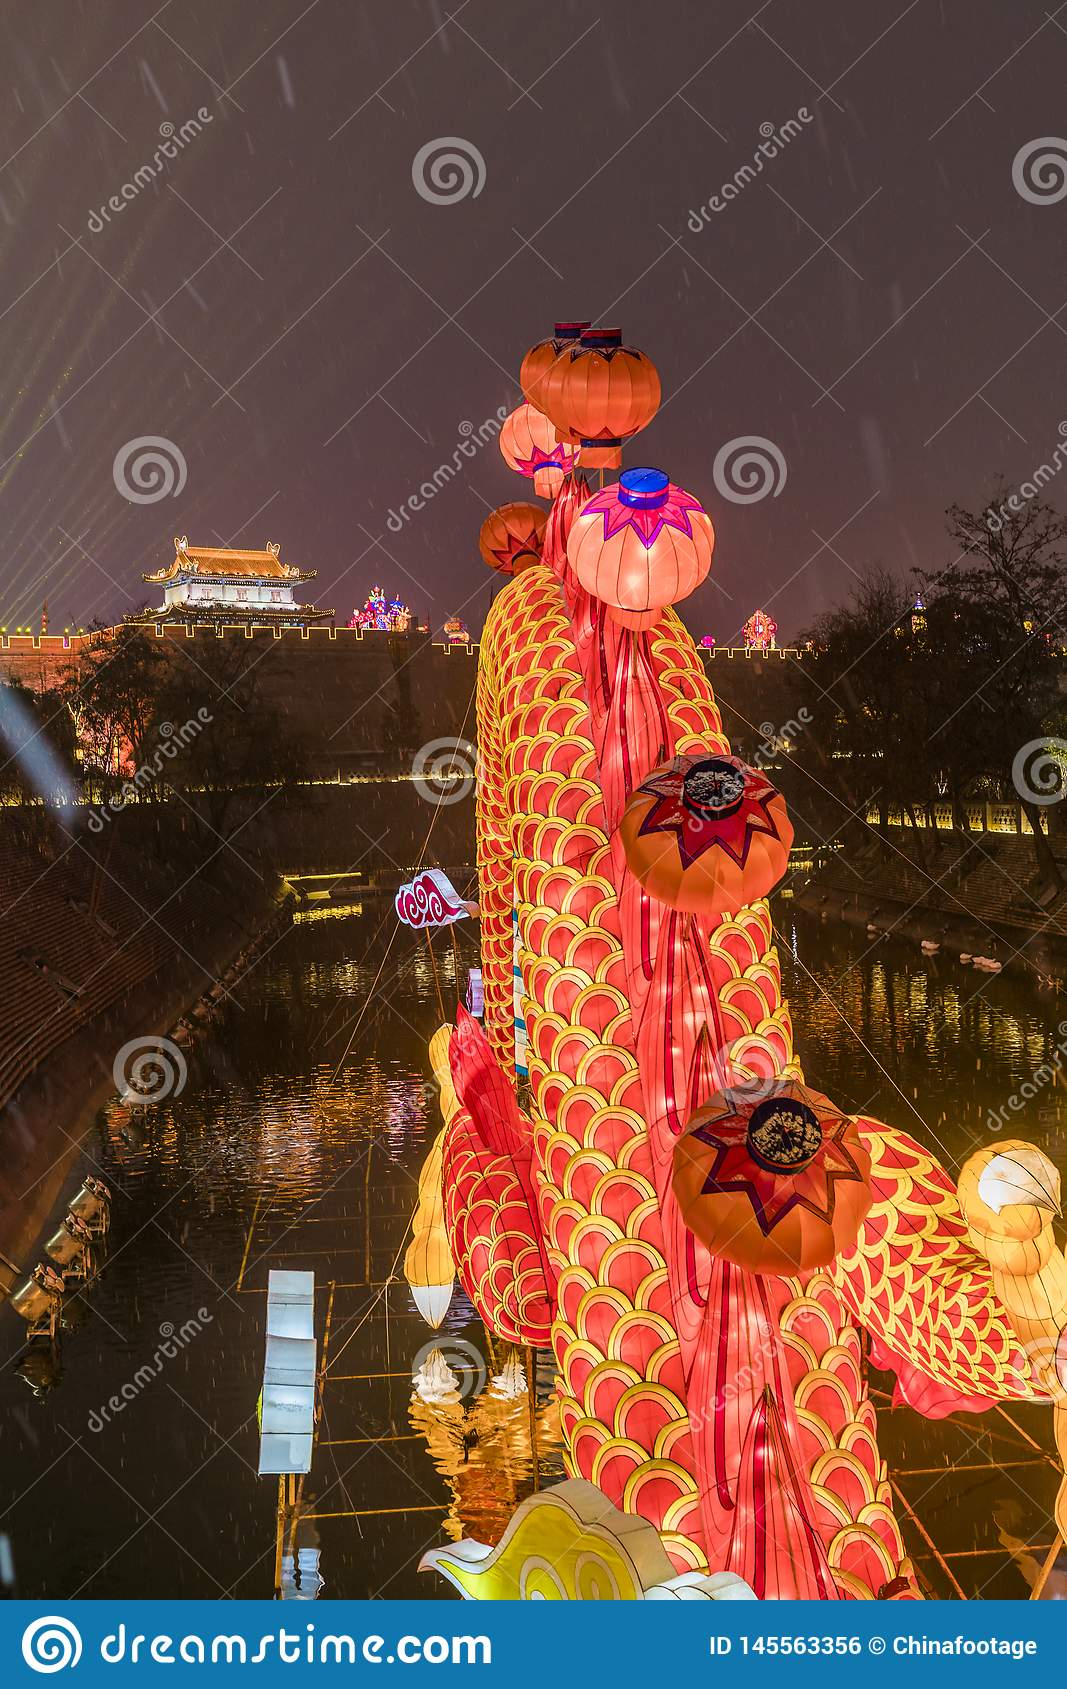 Lantern and lighting show at south gate of ancient city wall for celebrate Chinese spring festival,xi`an, shaanxi, china